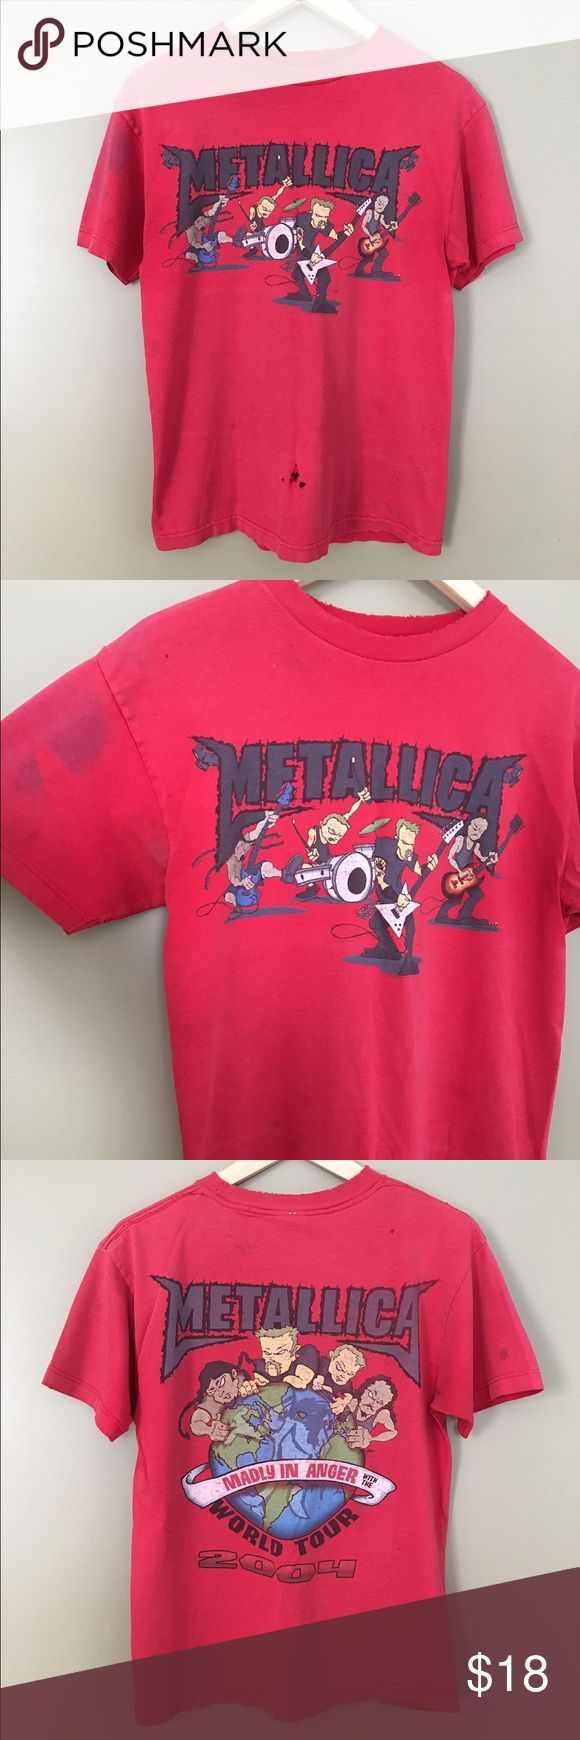 "Distressed Vintage Like Metallica Tour Shirt Distressed red Metallica Tour T-Shirt. From 2004. Great for collectors. Super grunge. Super soft. Size Medium. Laid flat: 25"" shoulders: 18"" chest: 19"" Tops Tees - Short Sleeve"